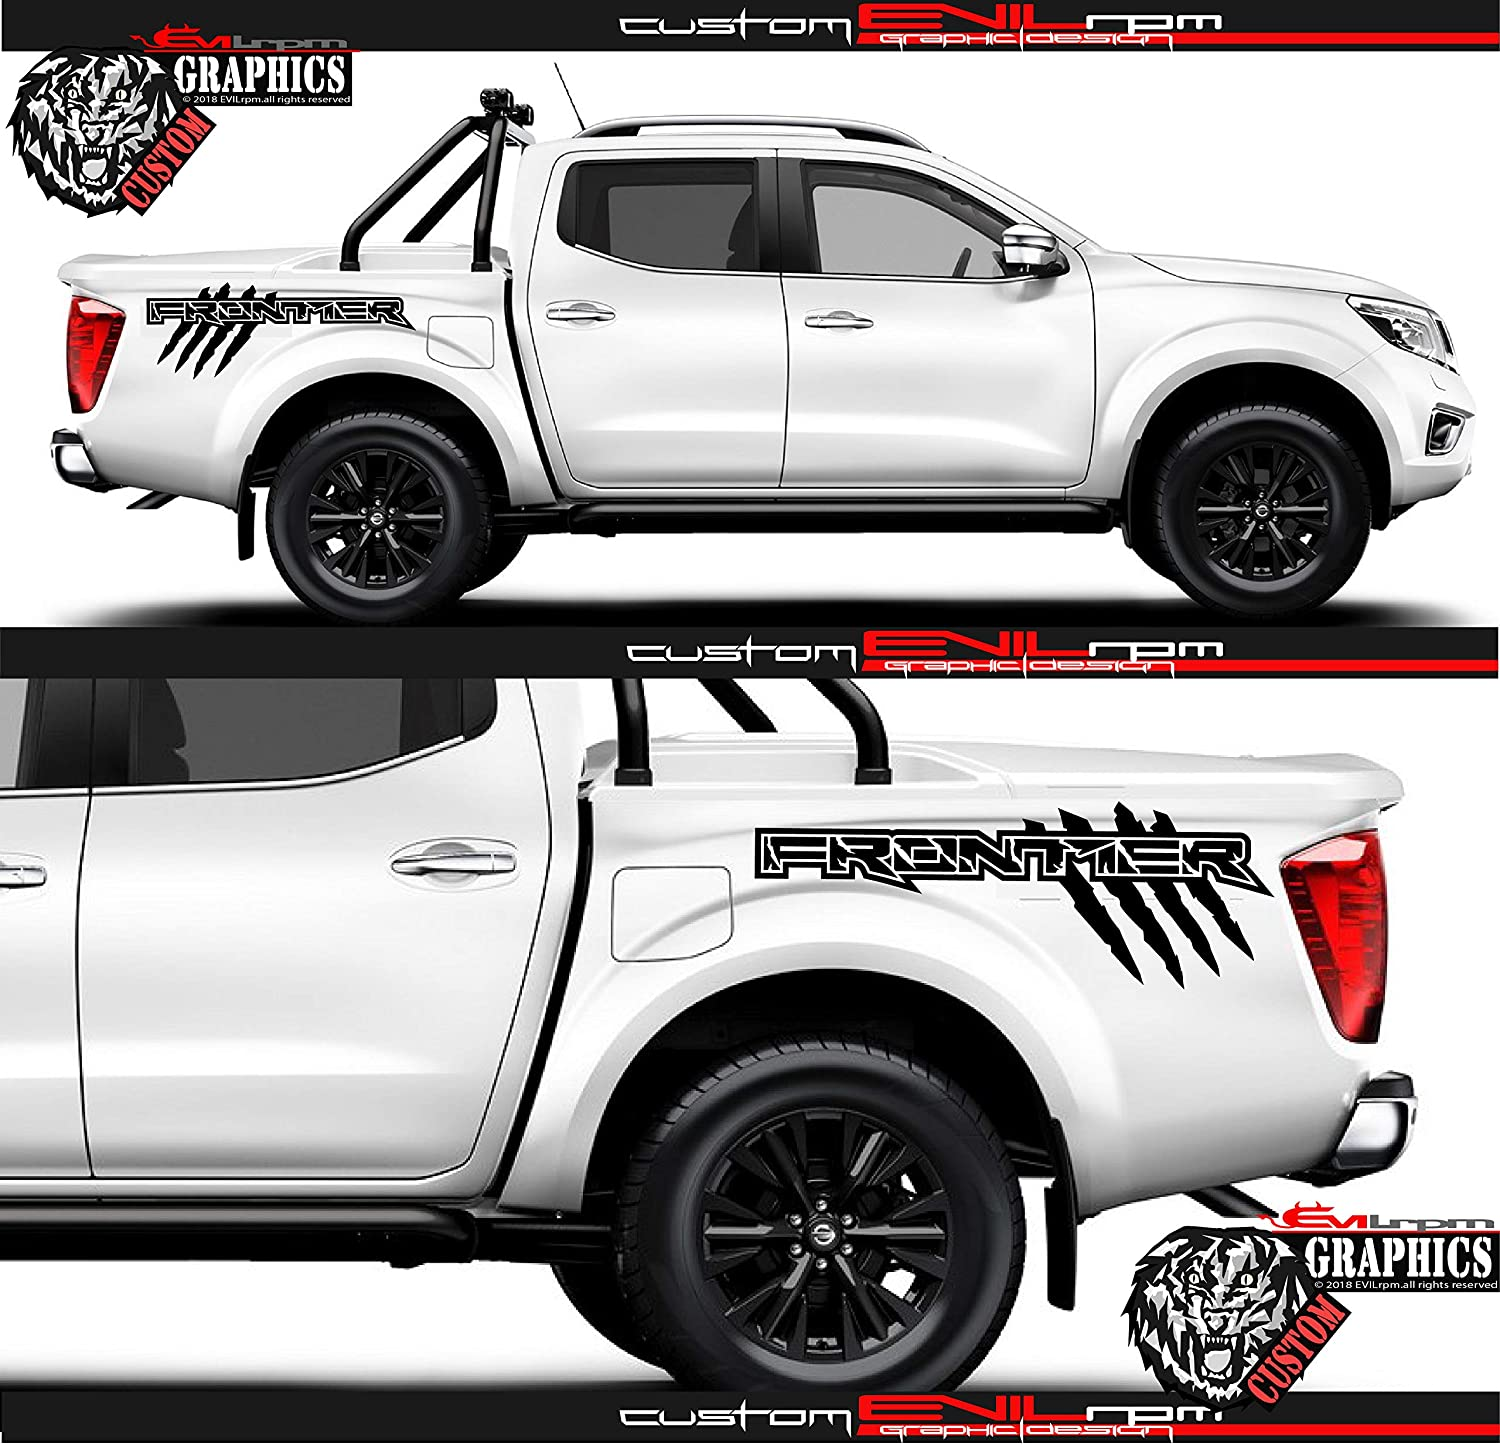 Evilrpm vinyl side truck bed decal sticker kit raptor distressed graphics compatible with nissan frontier black sticker pair left and right black